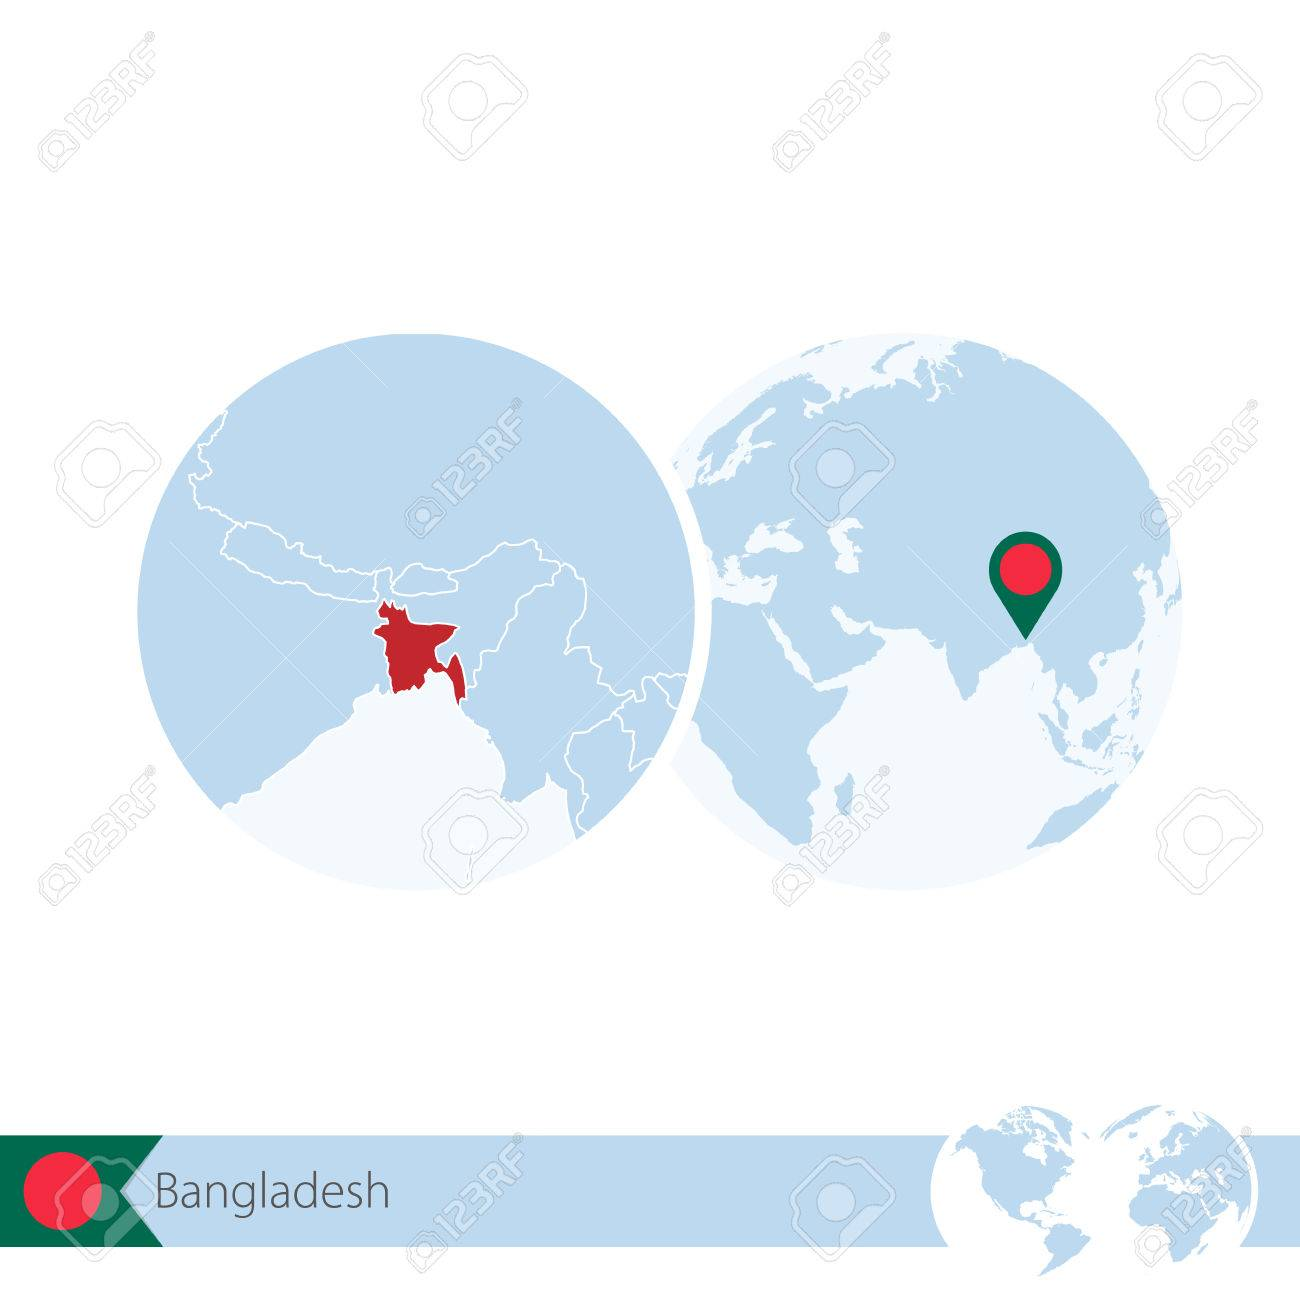 Picture of: Bangladesh On World Globe With Flag And Regional Map Of Bangladesh Royalty Free Cliparts Vectors And Stock Illustration Image 66691470